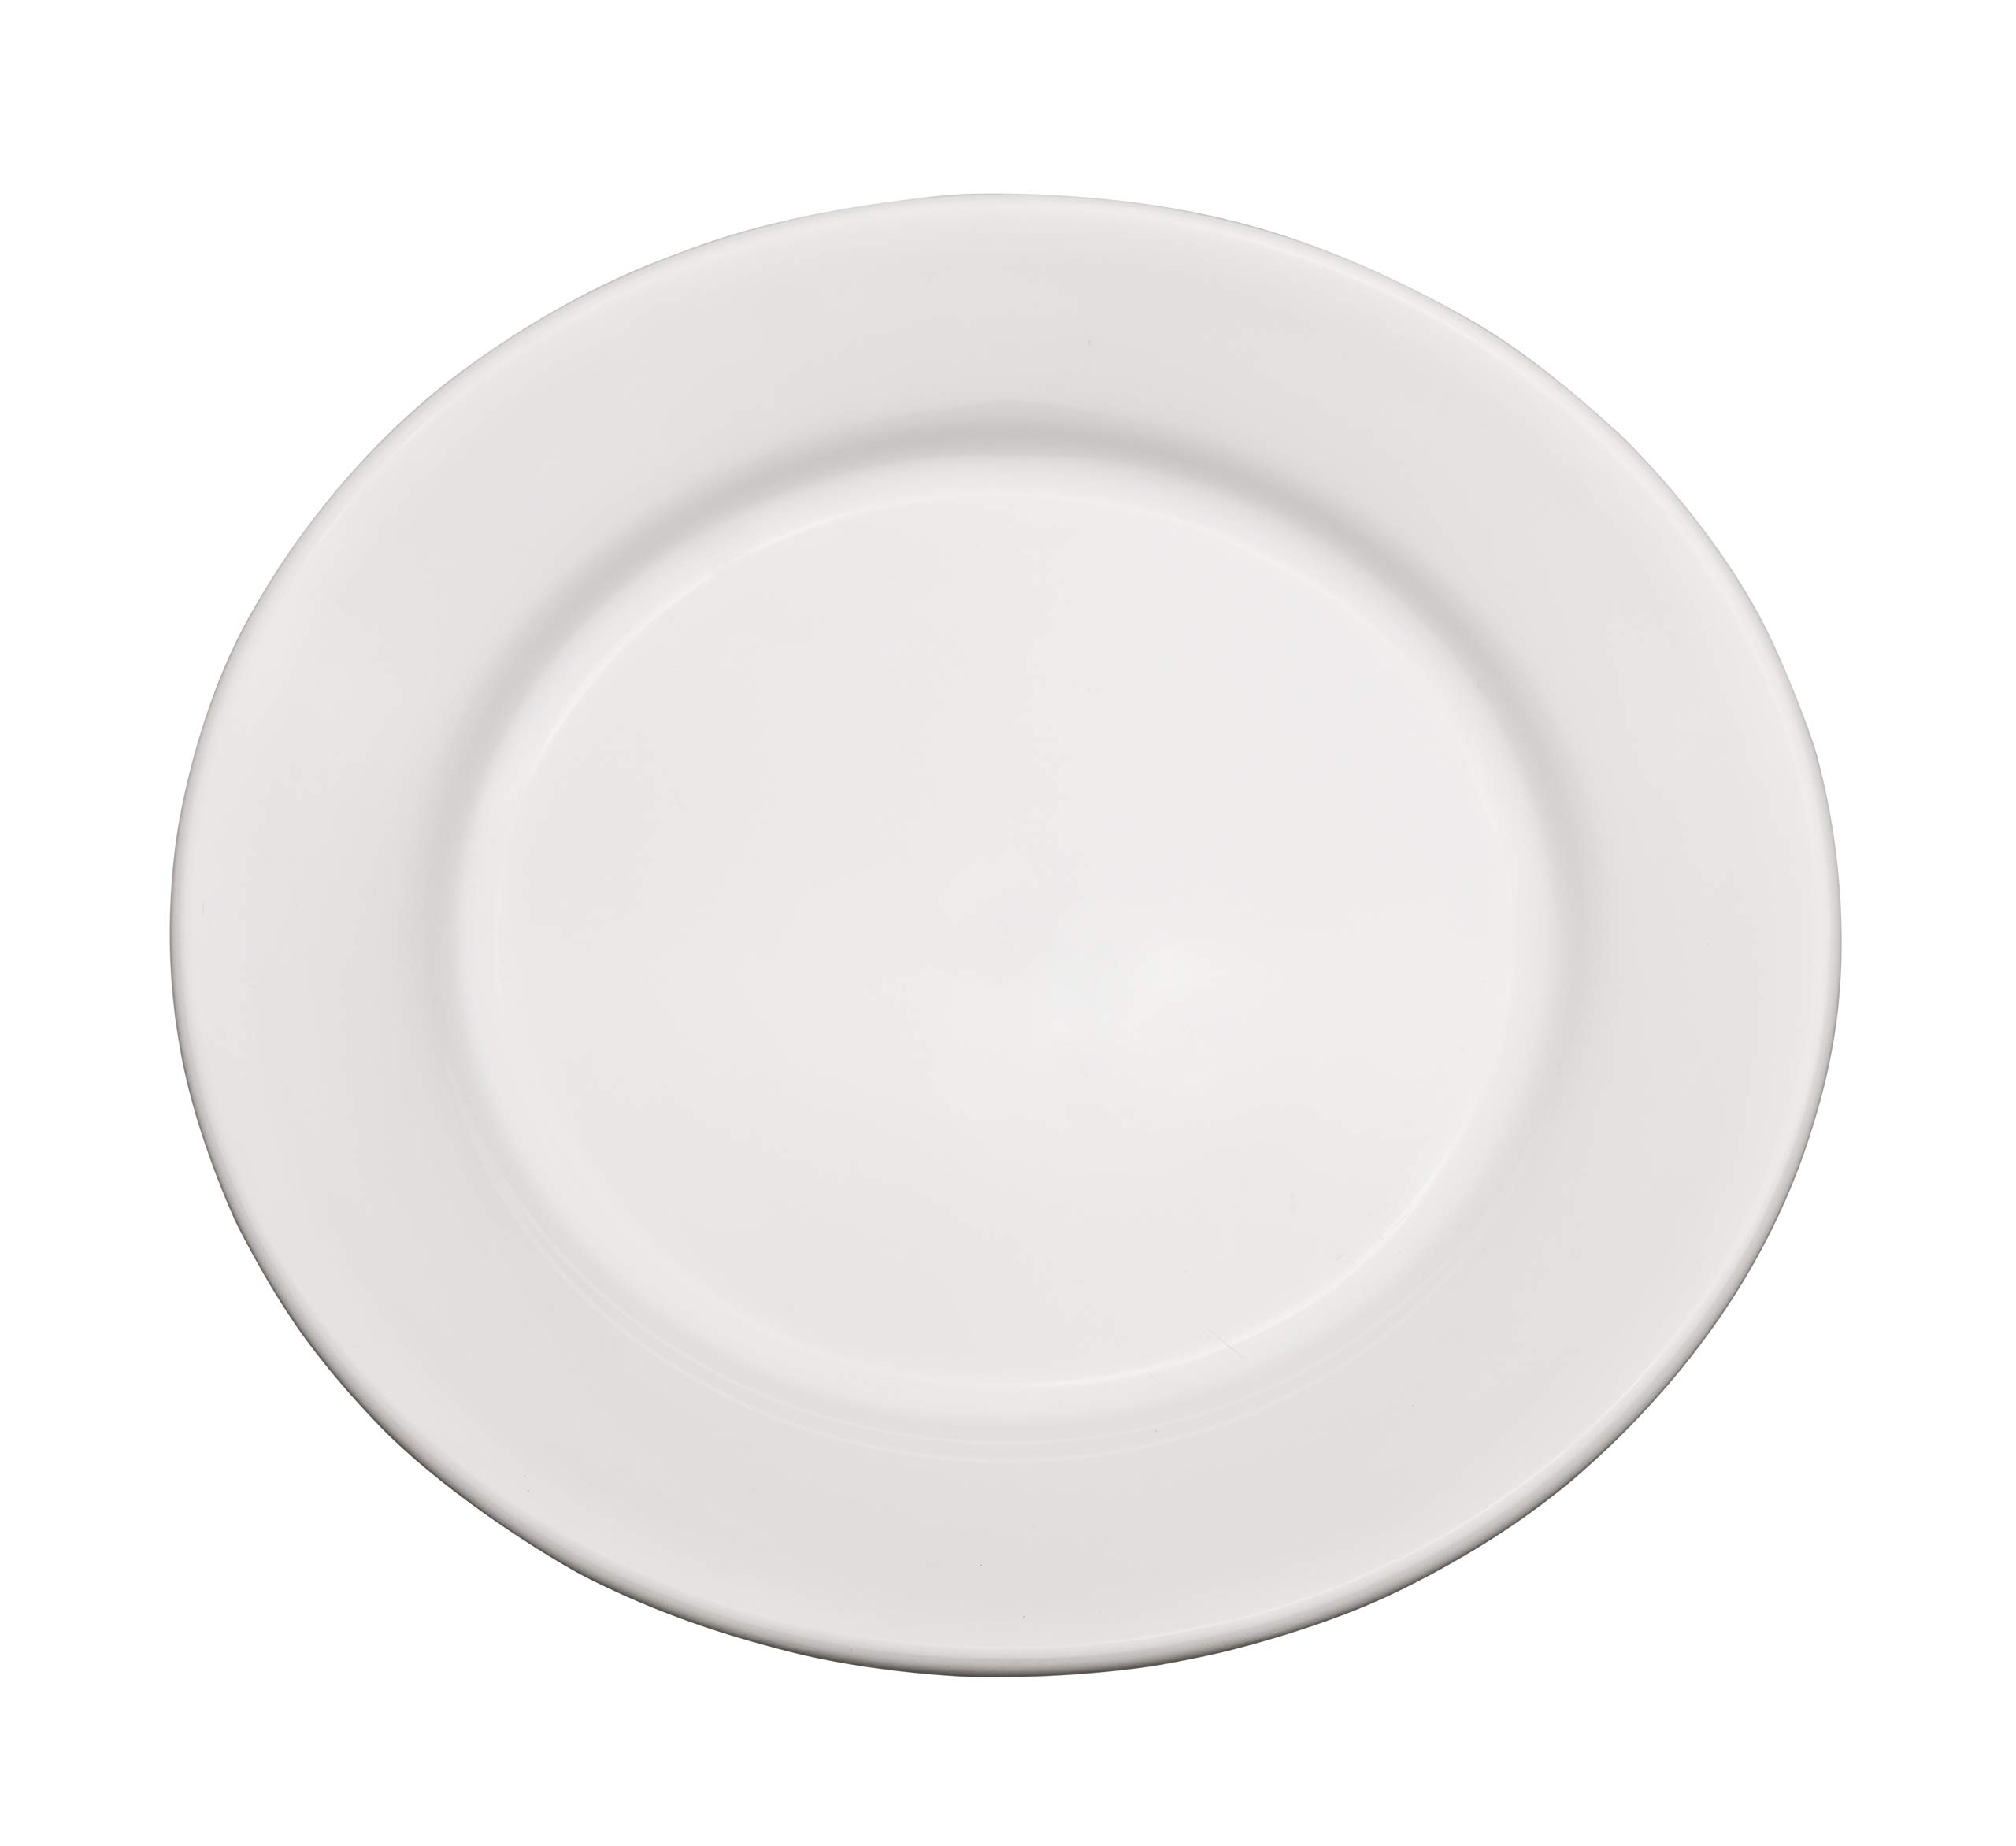 Chef Expressions 12'' Round Dinner Plate, Restaurant Quality, Vitrified Bright White Porcelain, Wide Rim, Rolled Edge (Case of 12)